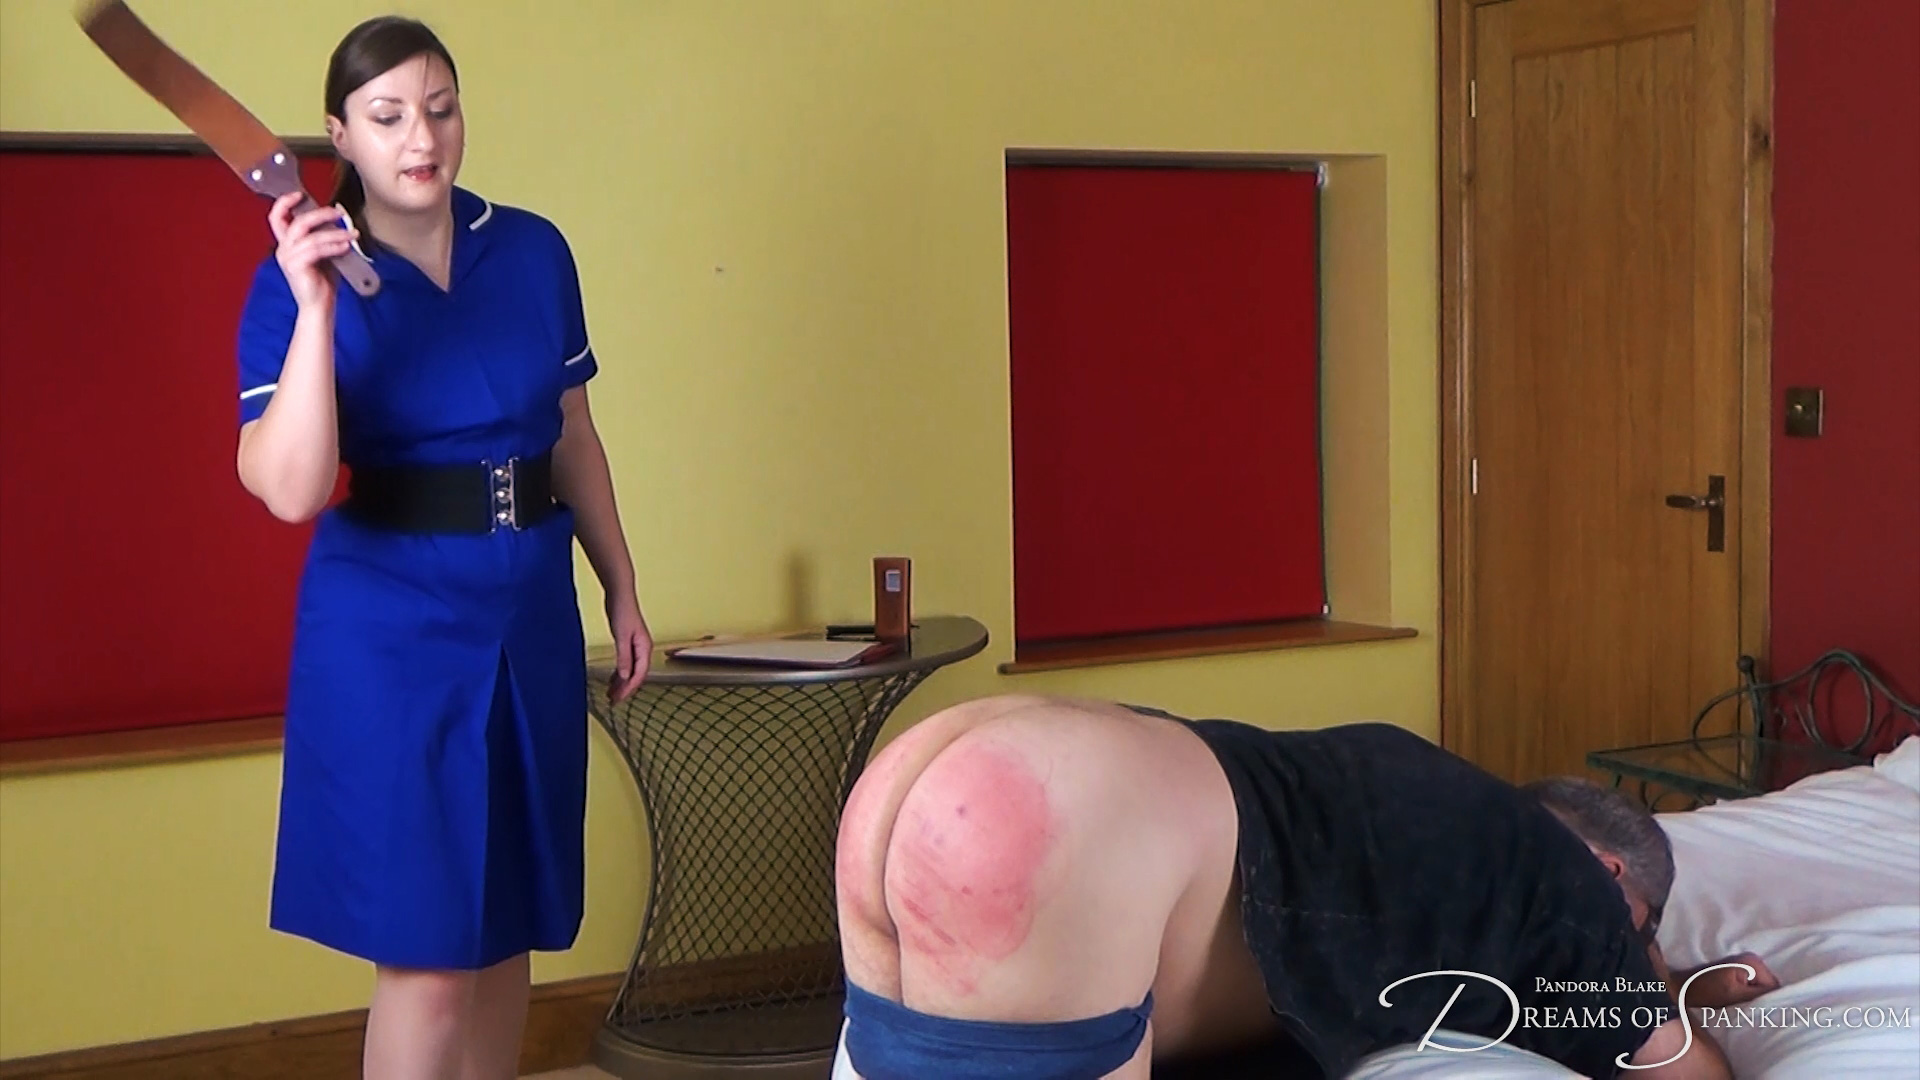 Nurse Pandora Blake administers therapeutic spanking therapy to Mike Pain in The Russian Treatment at Dreams of Spanking